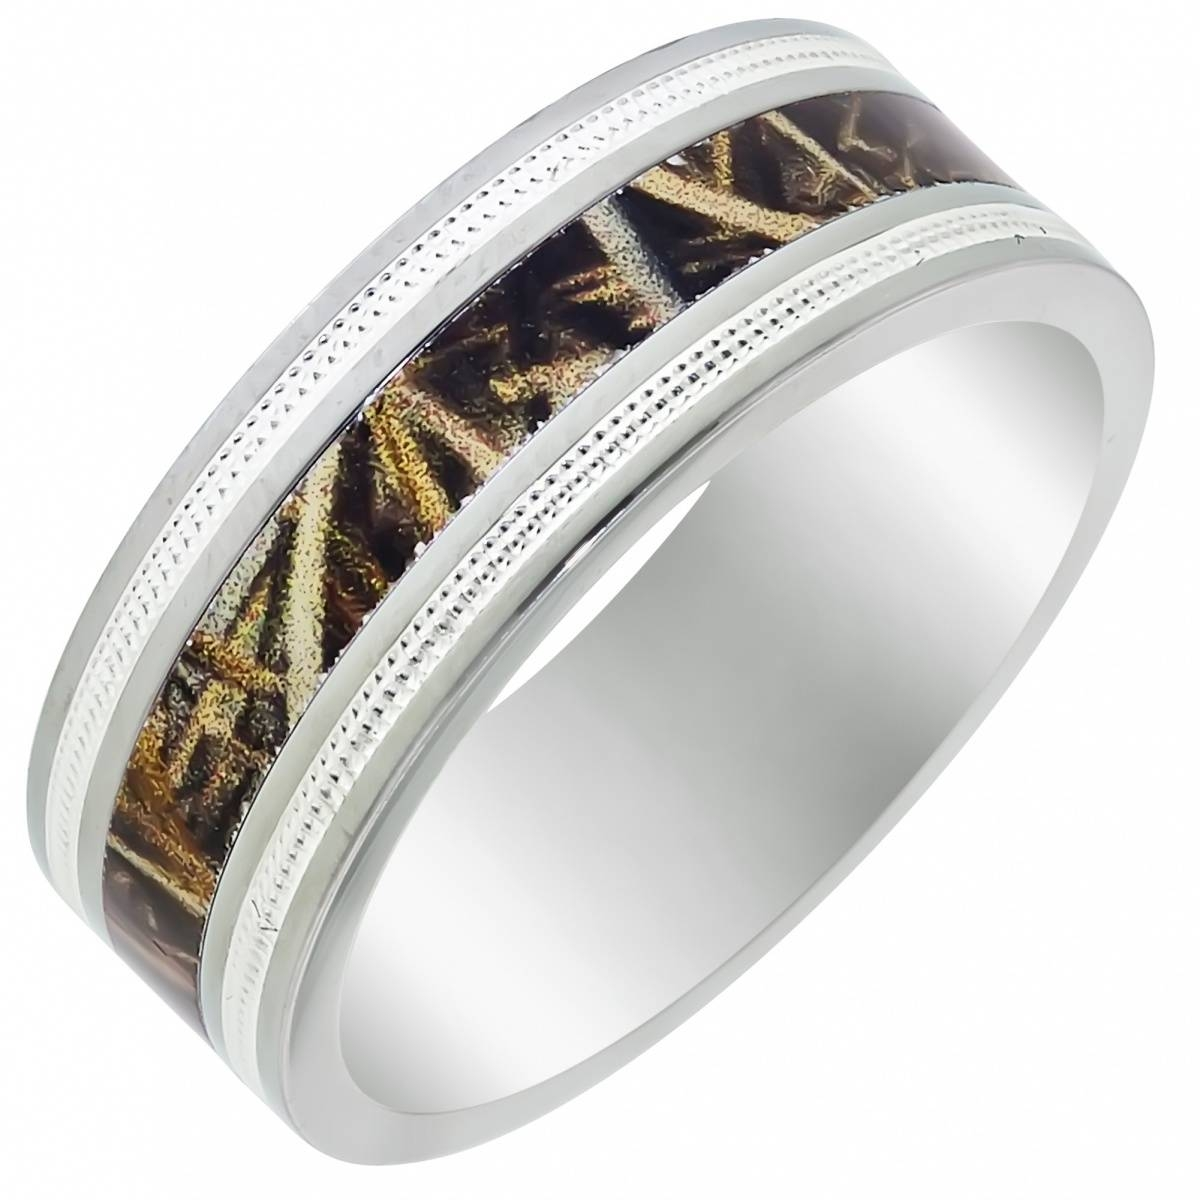 Unique Wedding Bands; Camo Wedding Bands | Wedding Ideas With Country Wedding Bands (Gallery 6 of 15)